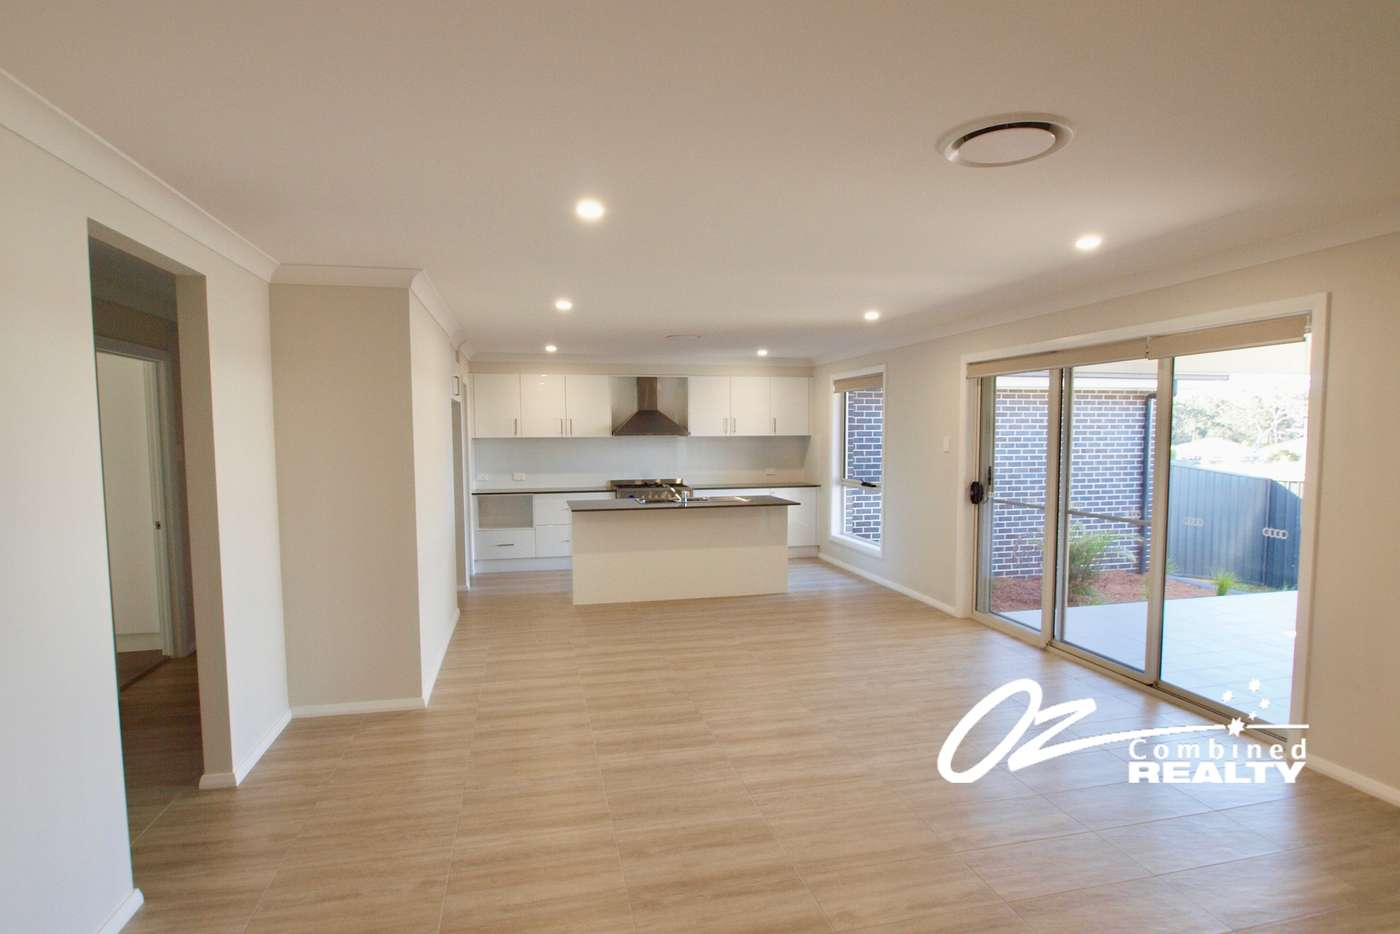 Sixth view of Homely house listing, 35 Bayswood Avenue, Vincentia NSW 2540